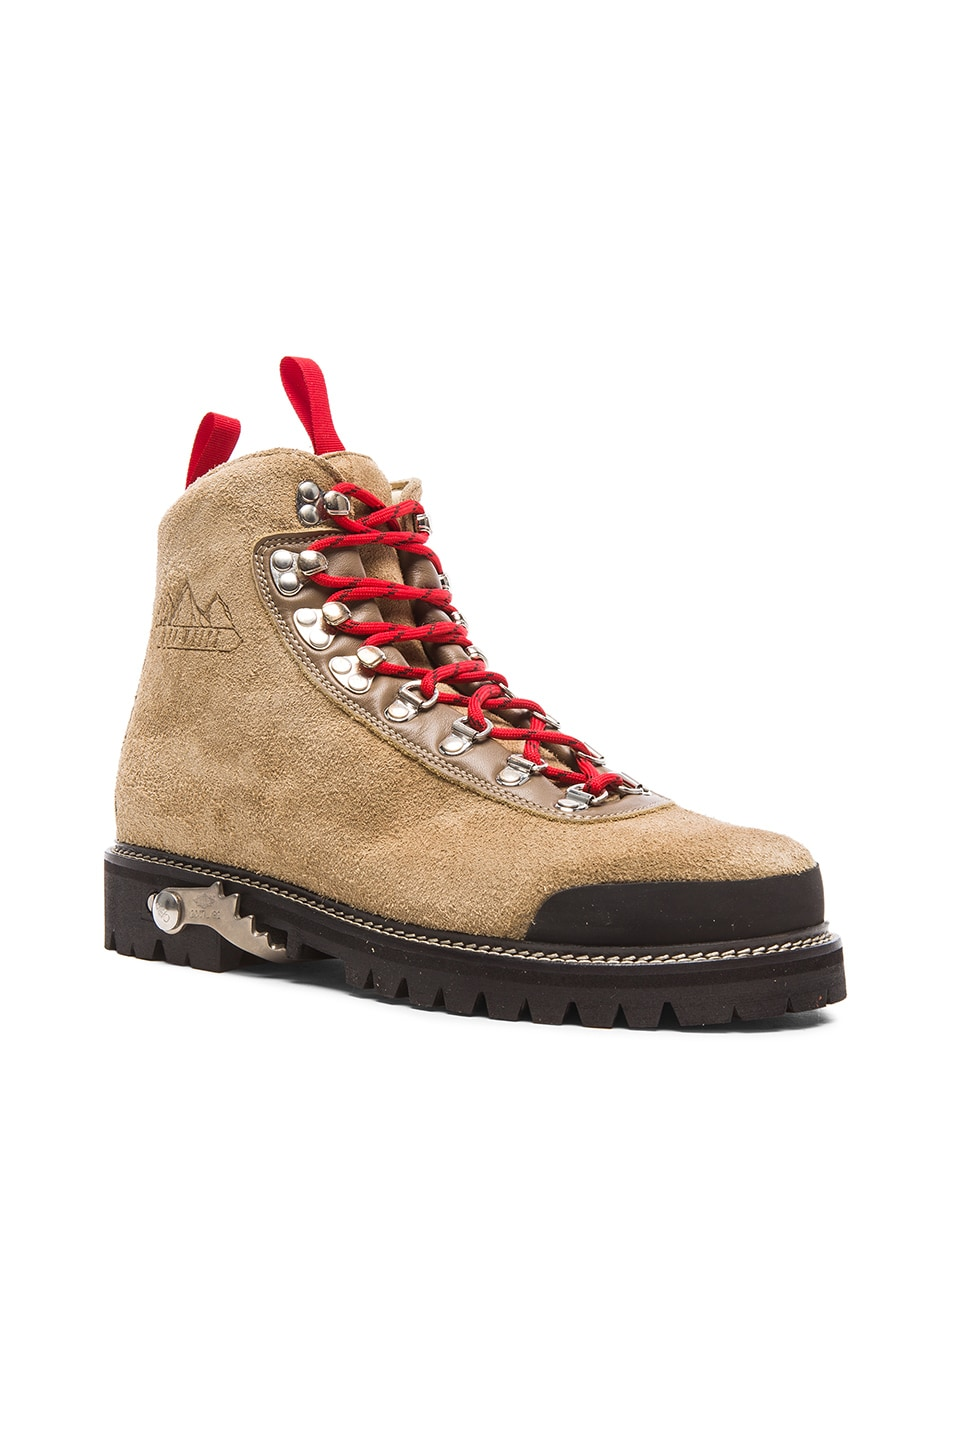 01388e3f7821a Image 1 of OFF-WHITE Suede Hiking Boots in Sand